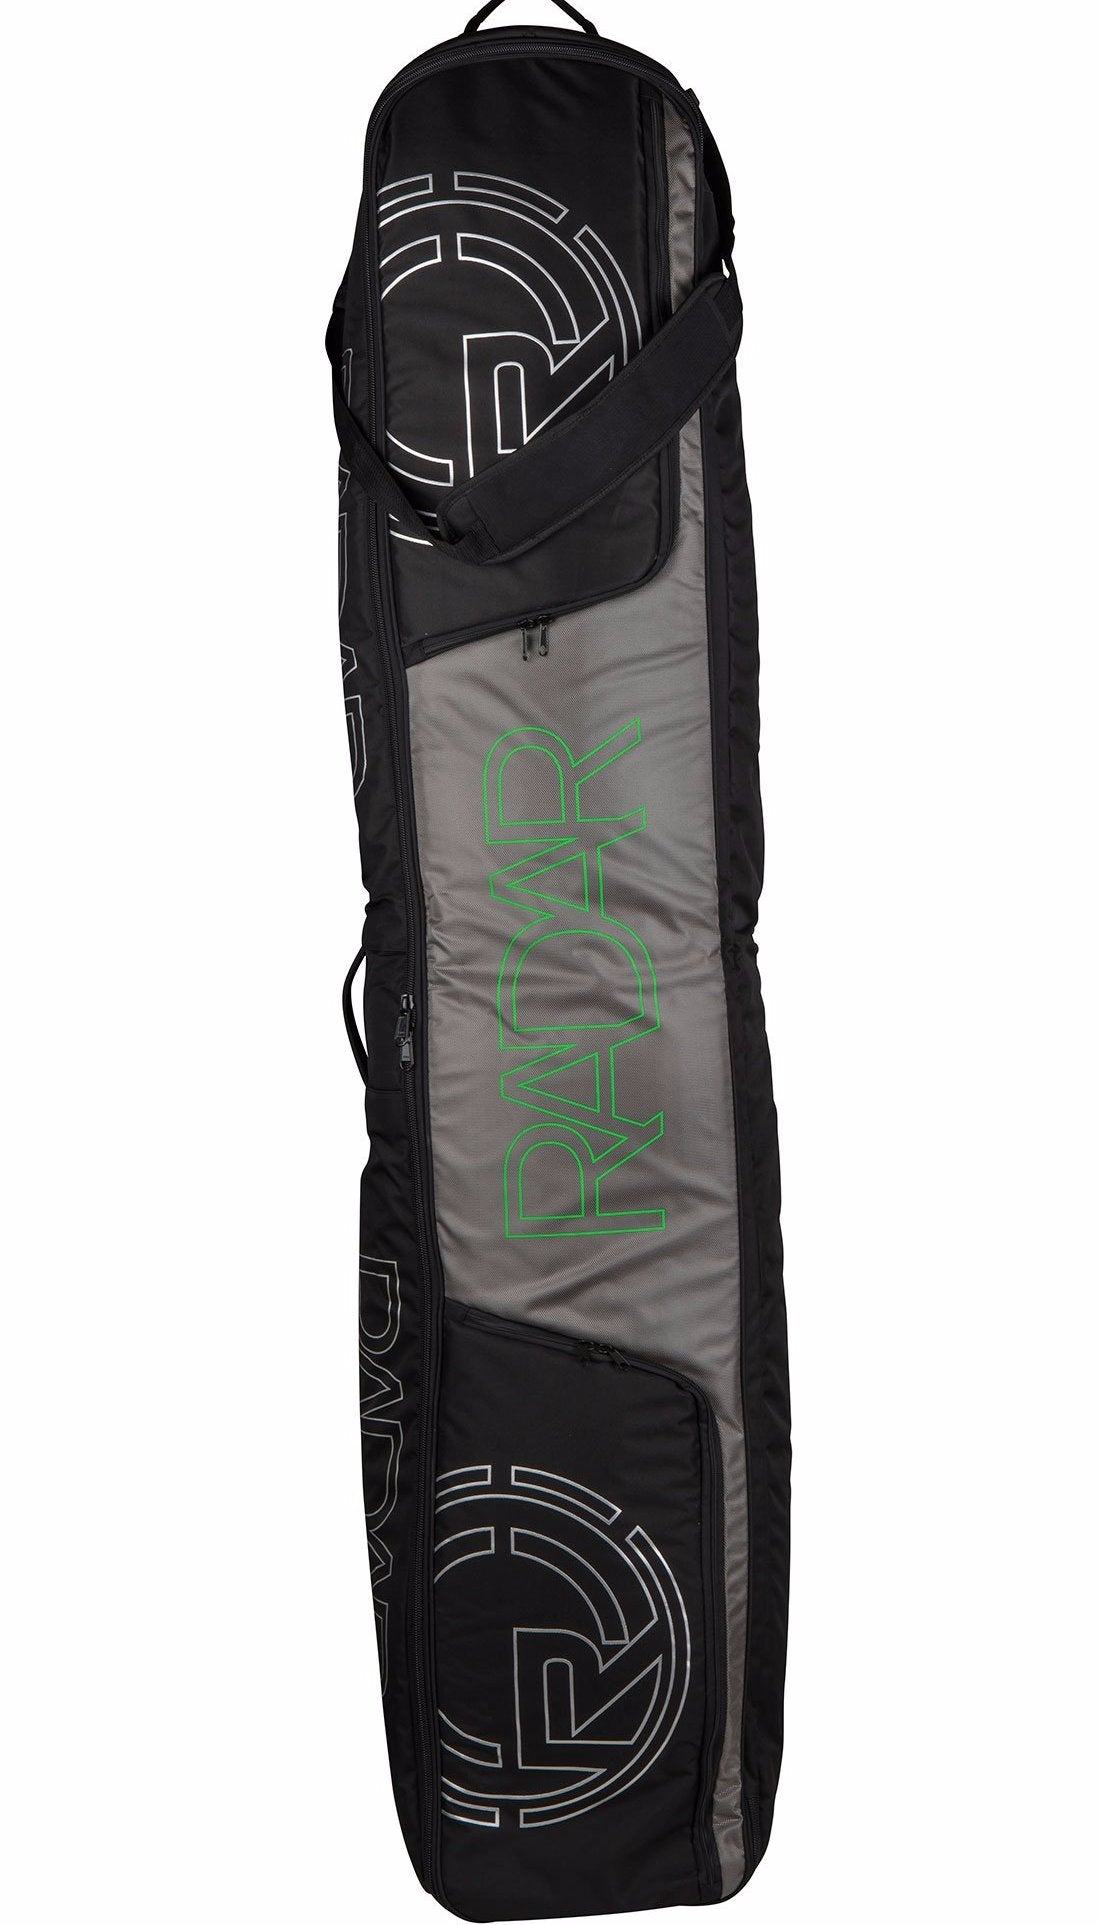 Radar Team Padded Wheelie Bag